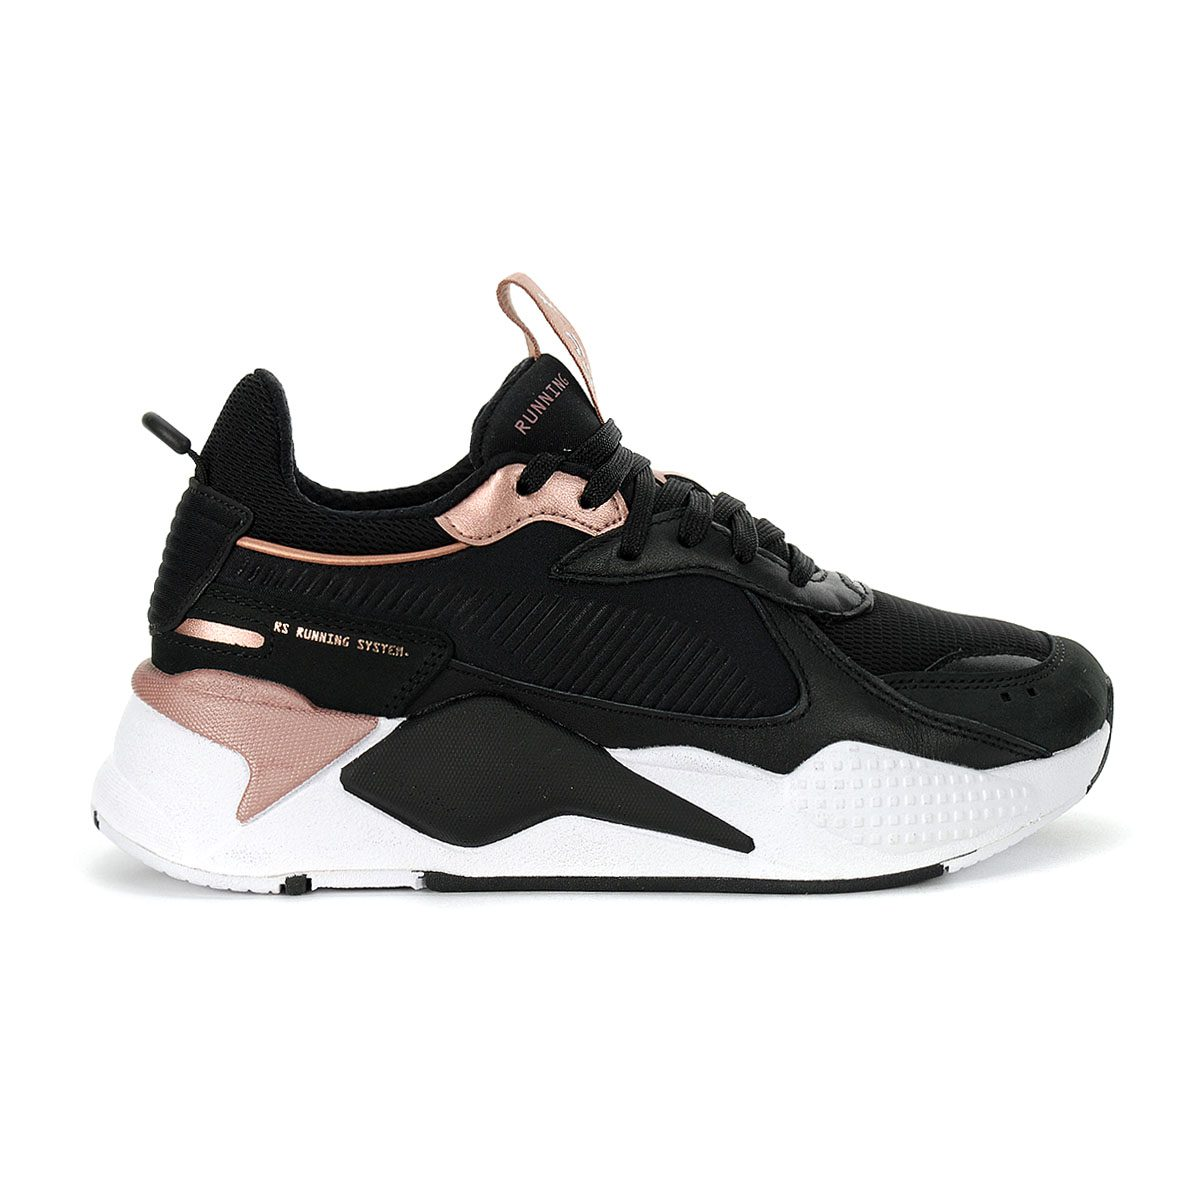 Details about Puma Women's RS-X Trophy Puma Black/Rose Gold Sneakers  37075204 NEW